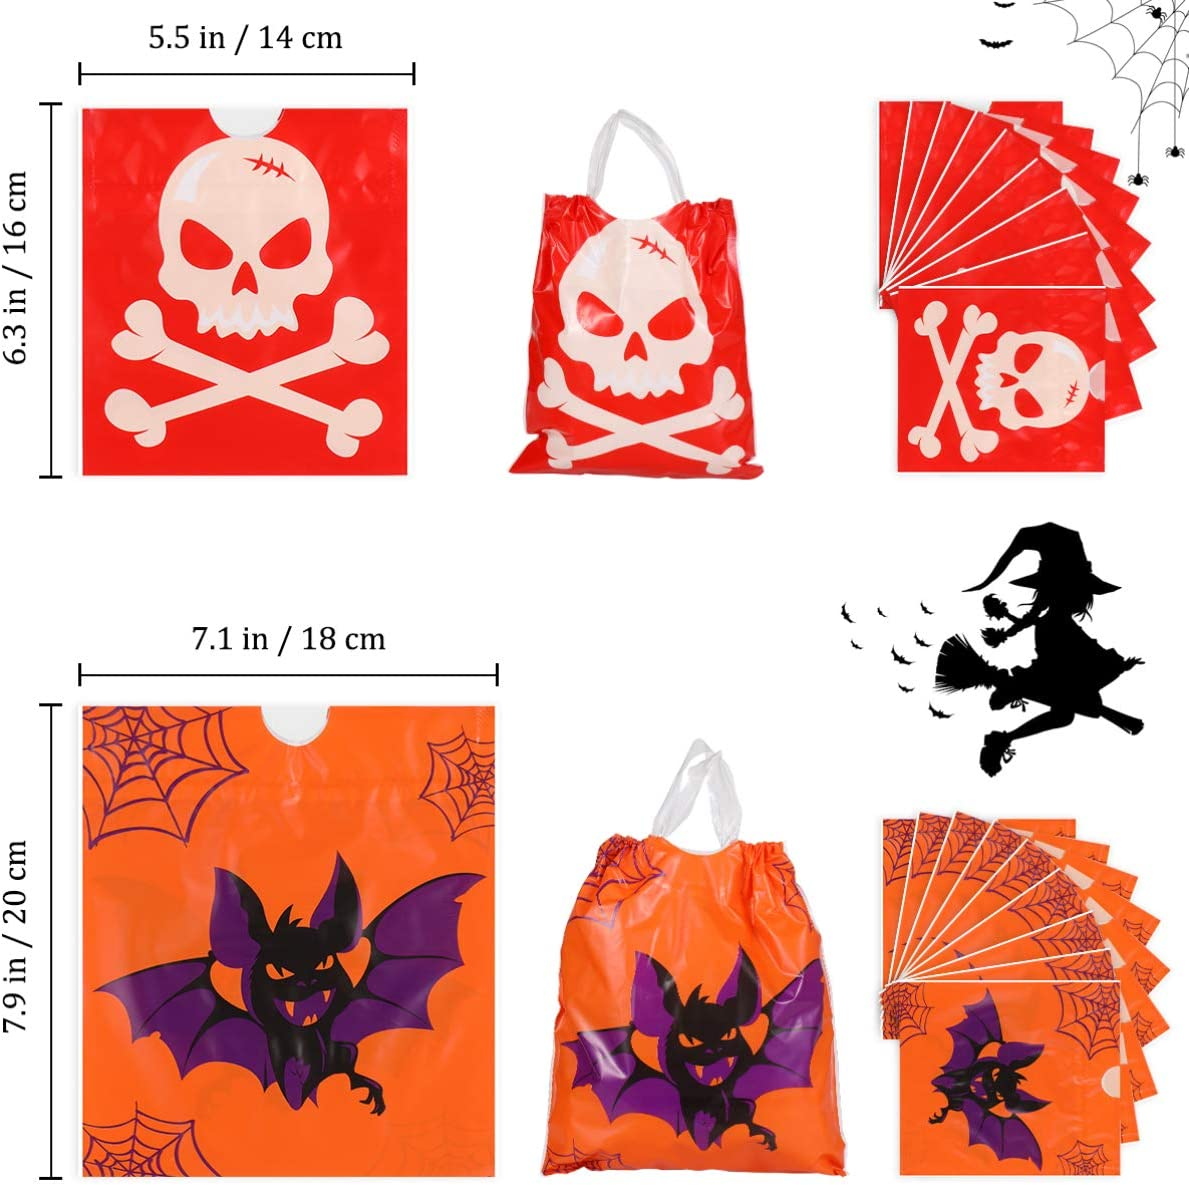 Halloween Drawstring Bags 8 Patterns Gift Bags Treat Bags Candy Sacks for Banquet Halloween Holiday 72pcs